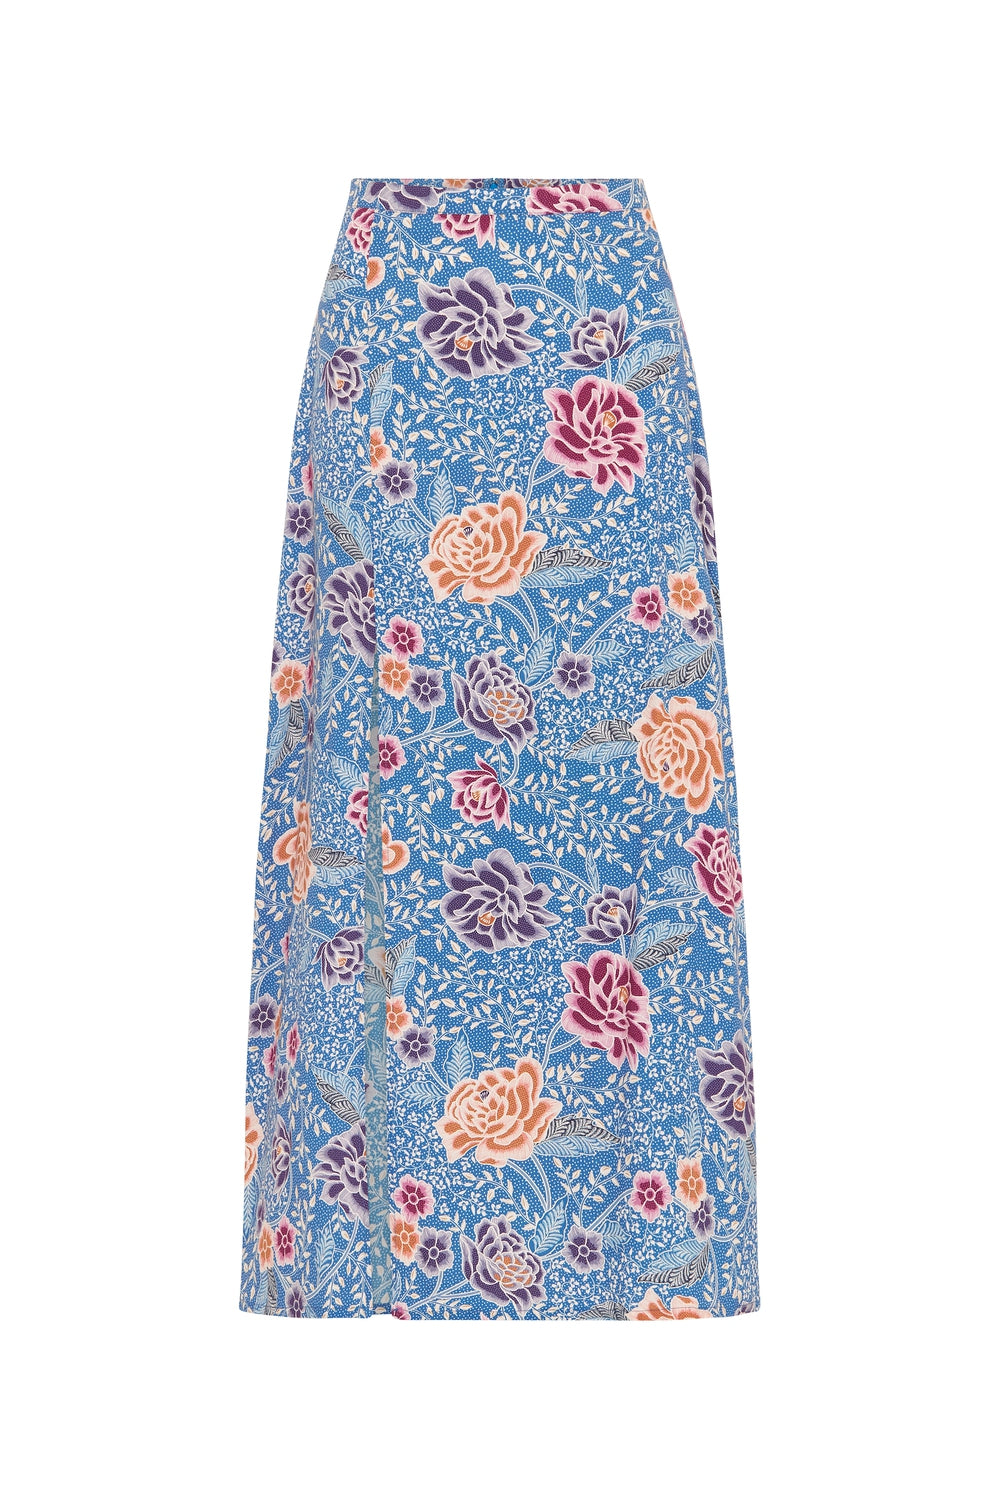 Leilani Midi Skirt in Floral Reef